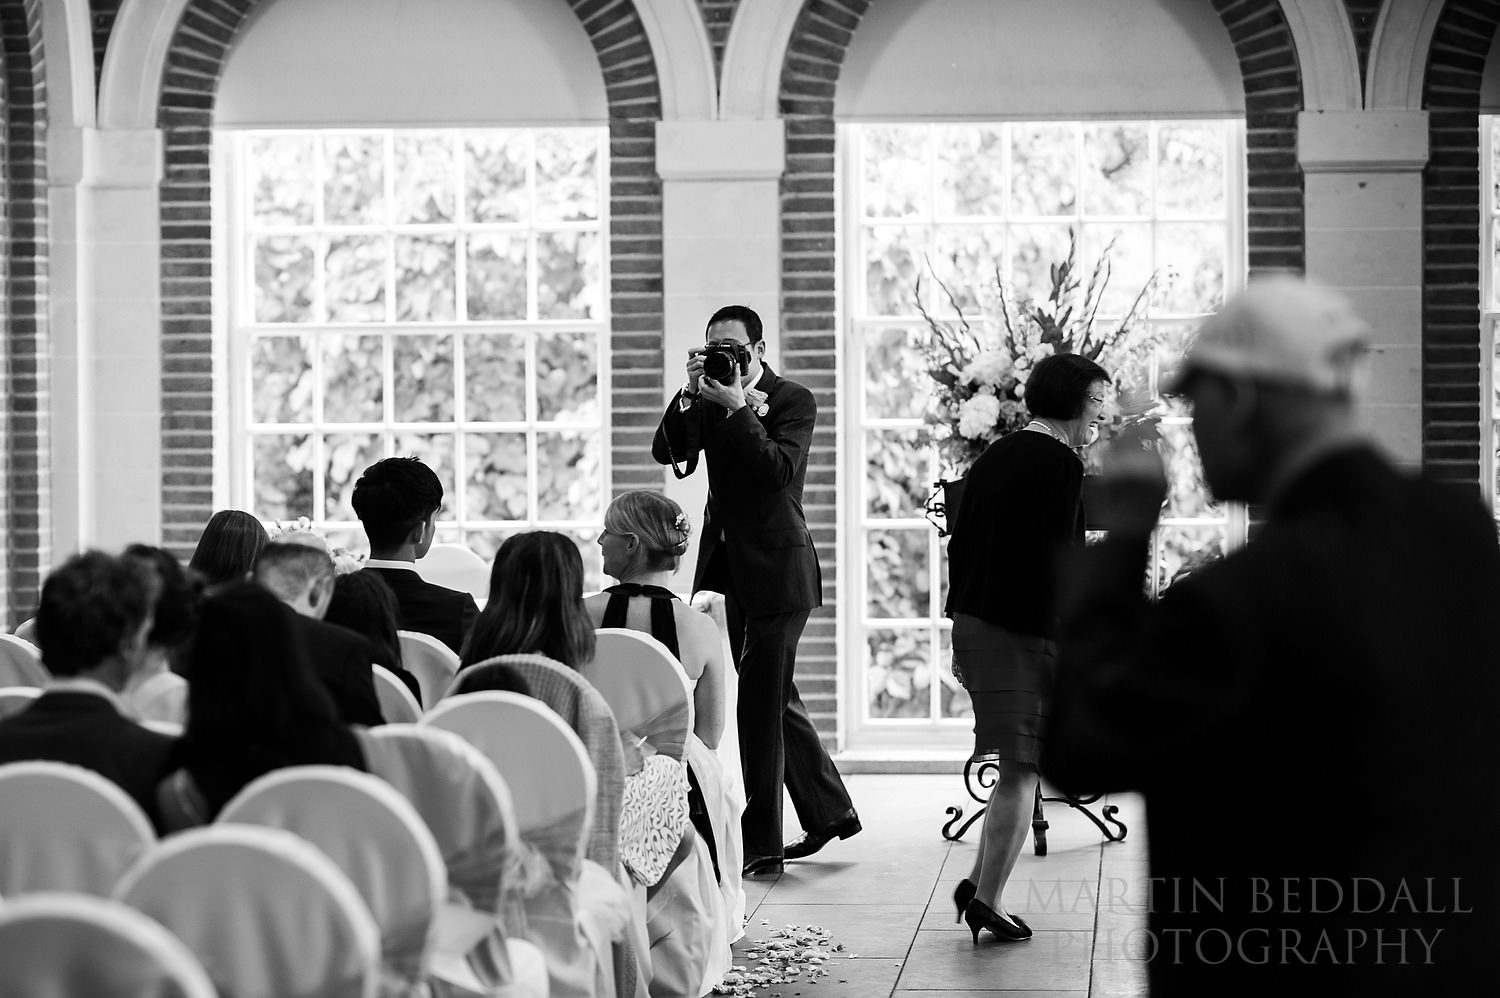 Groom with his own camera in the ceremony room at Great Fosters